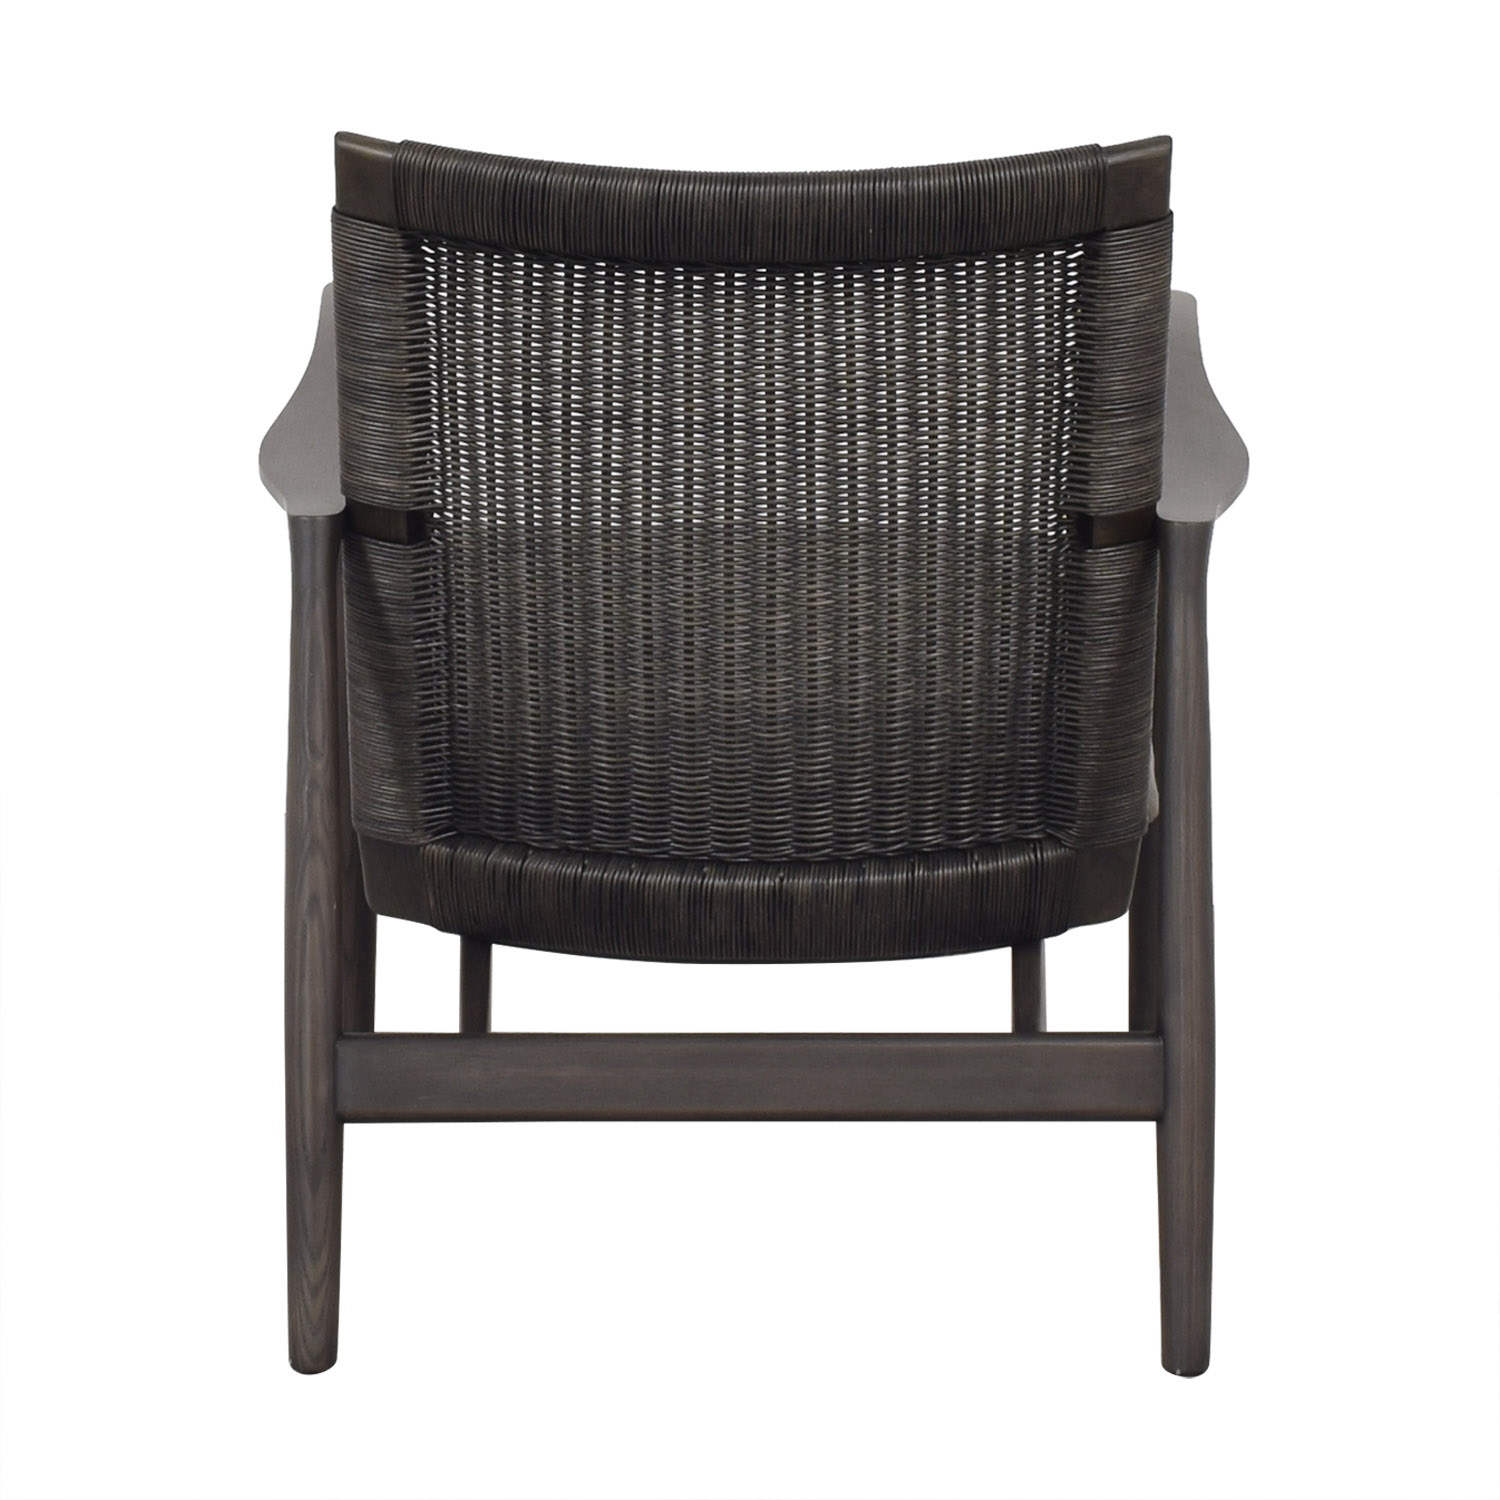 Crate & Barrel Crate & Barrel Sebago Midcentury Rattan Chair with Leather Cushion ct